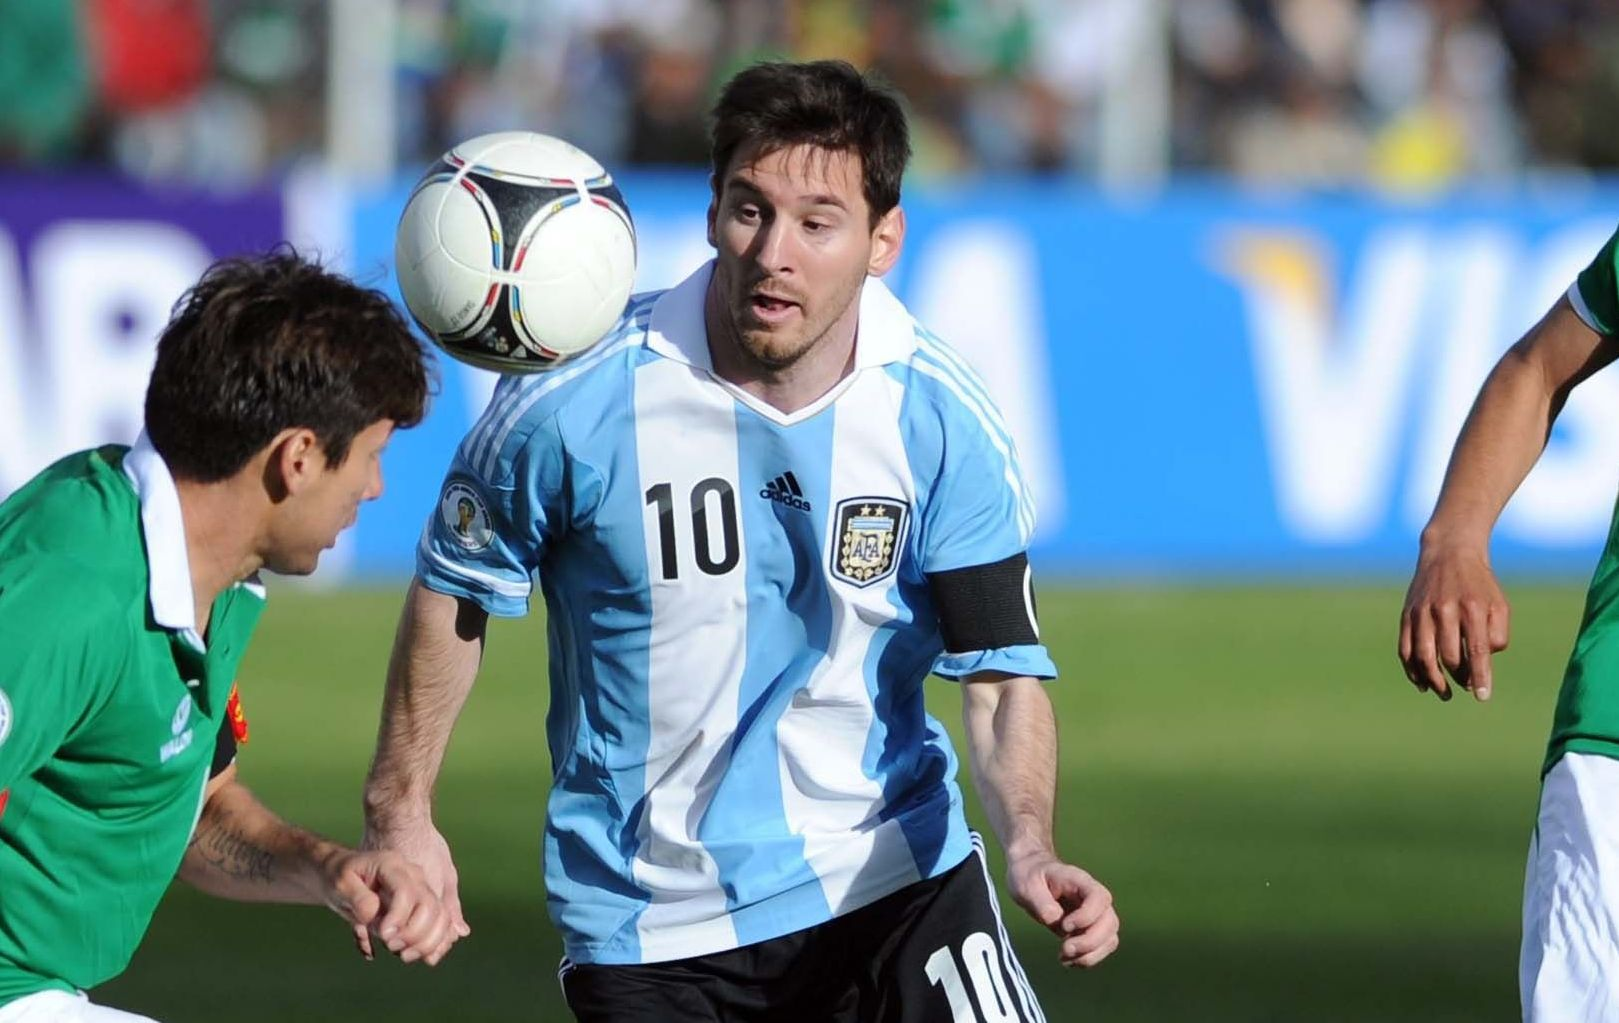 Match Argentine Vs Bosnie-Herzégovine en direct et streaming - Lionel Messi